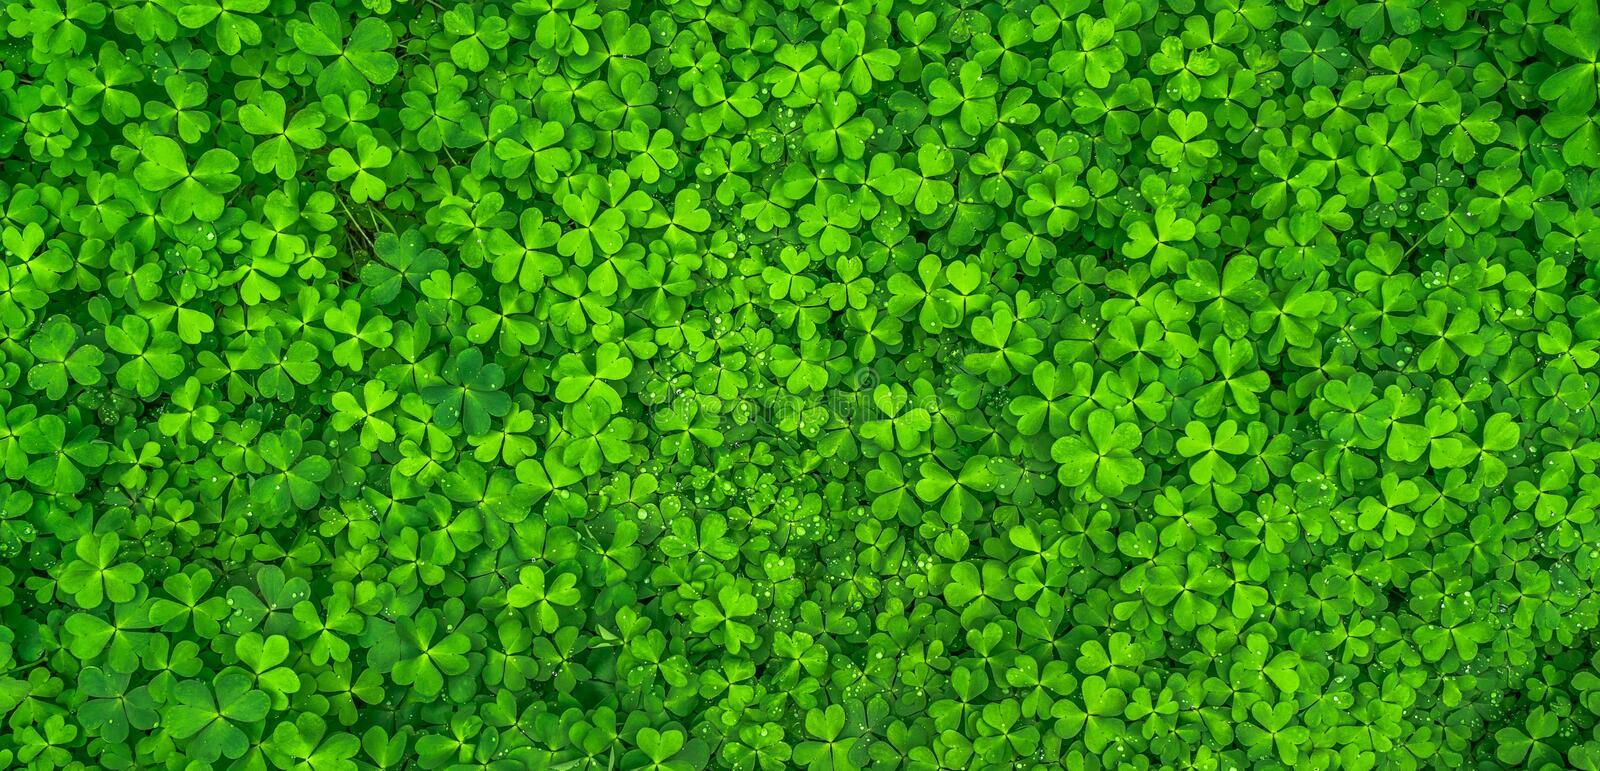 Top View Photo of Clover Leaves royalty free stock photos